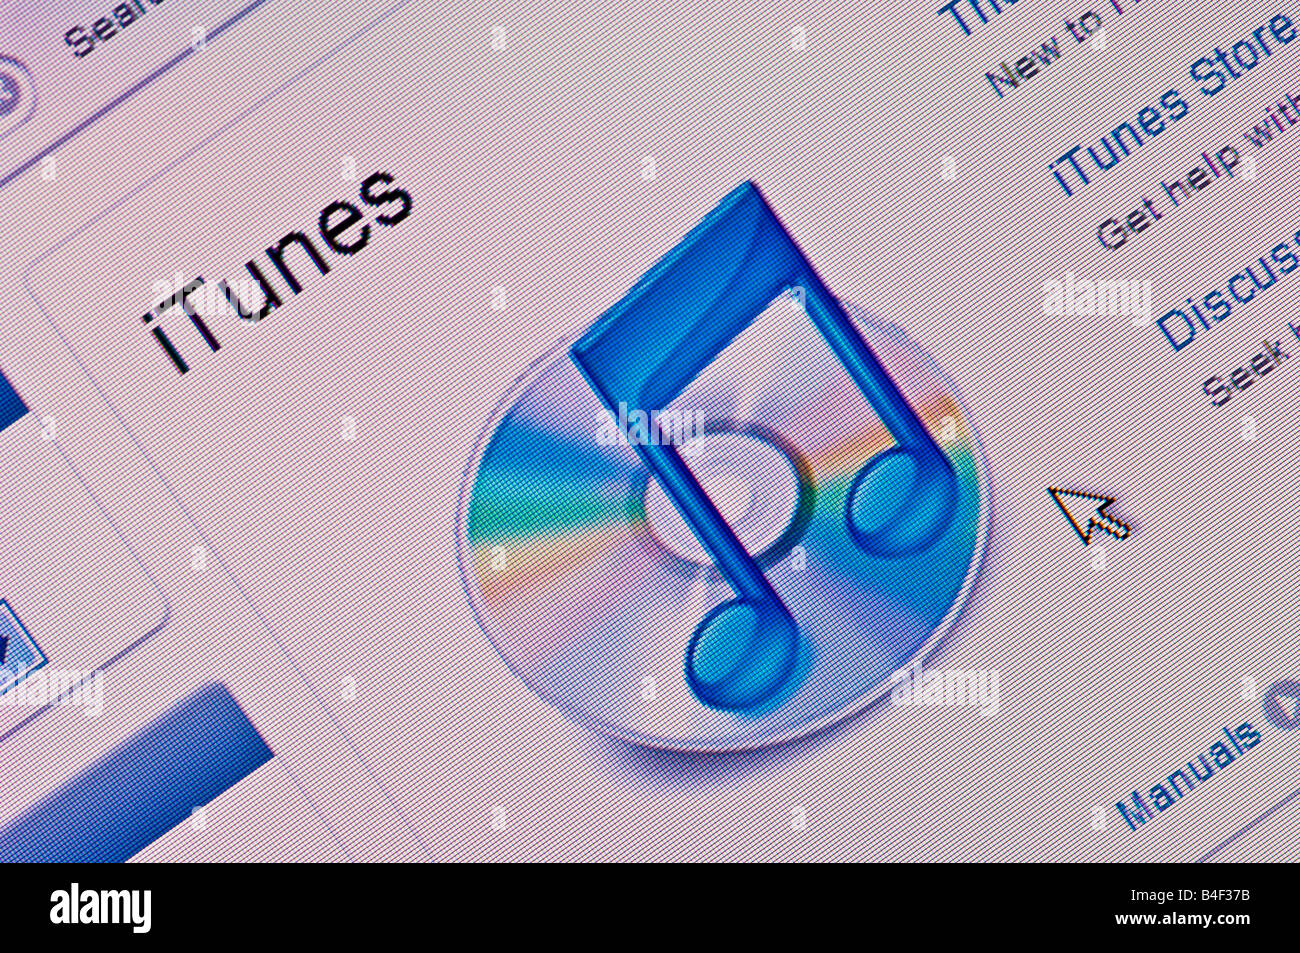 how to download itunes from apple website